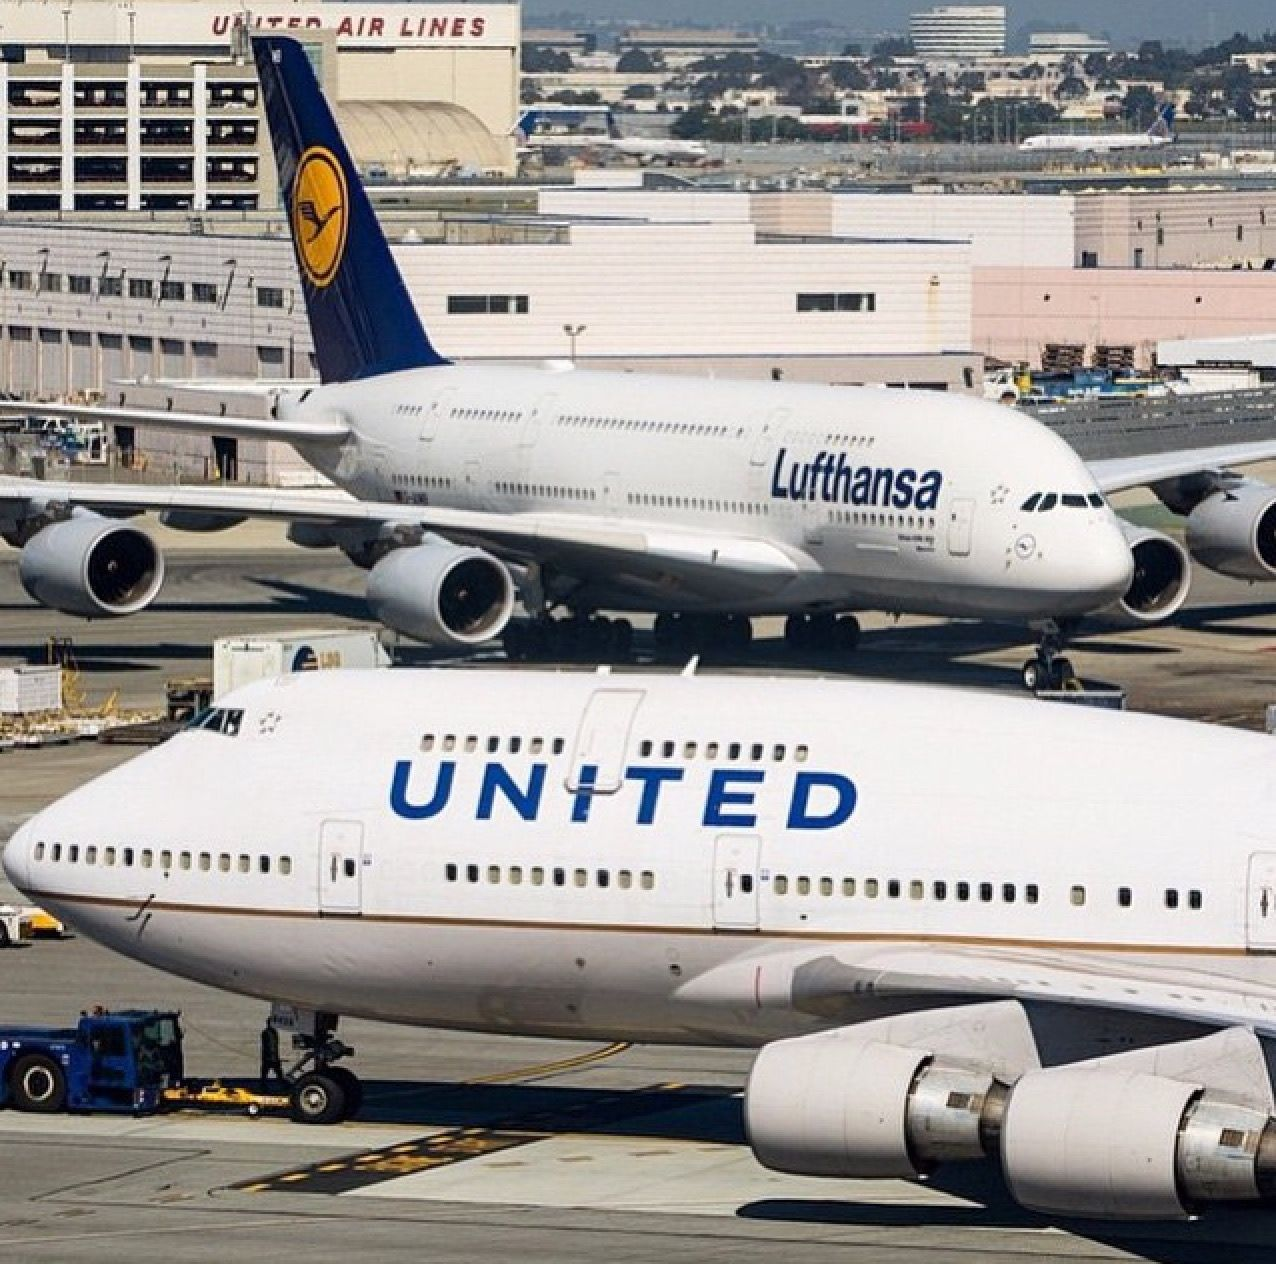 United Airlines 747 422 And Lufthansa A380 800 At San Francisco International Airpor San Francisco International Airport United Airlines Chicago O Hare Airport